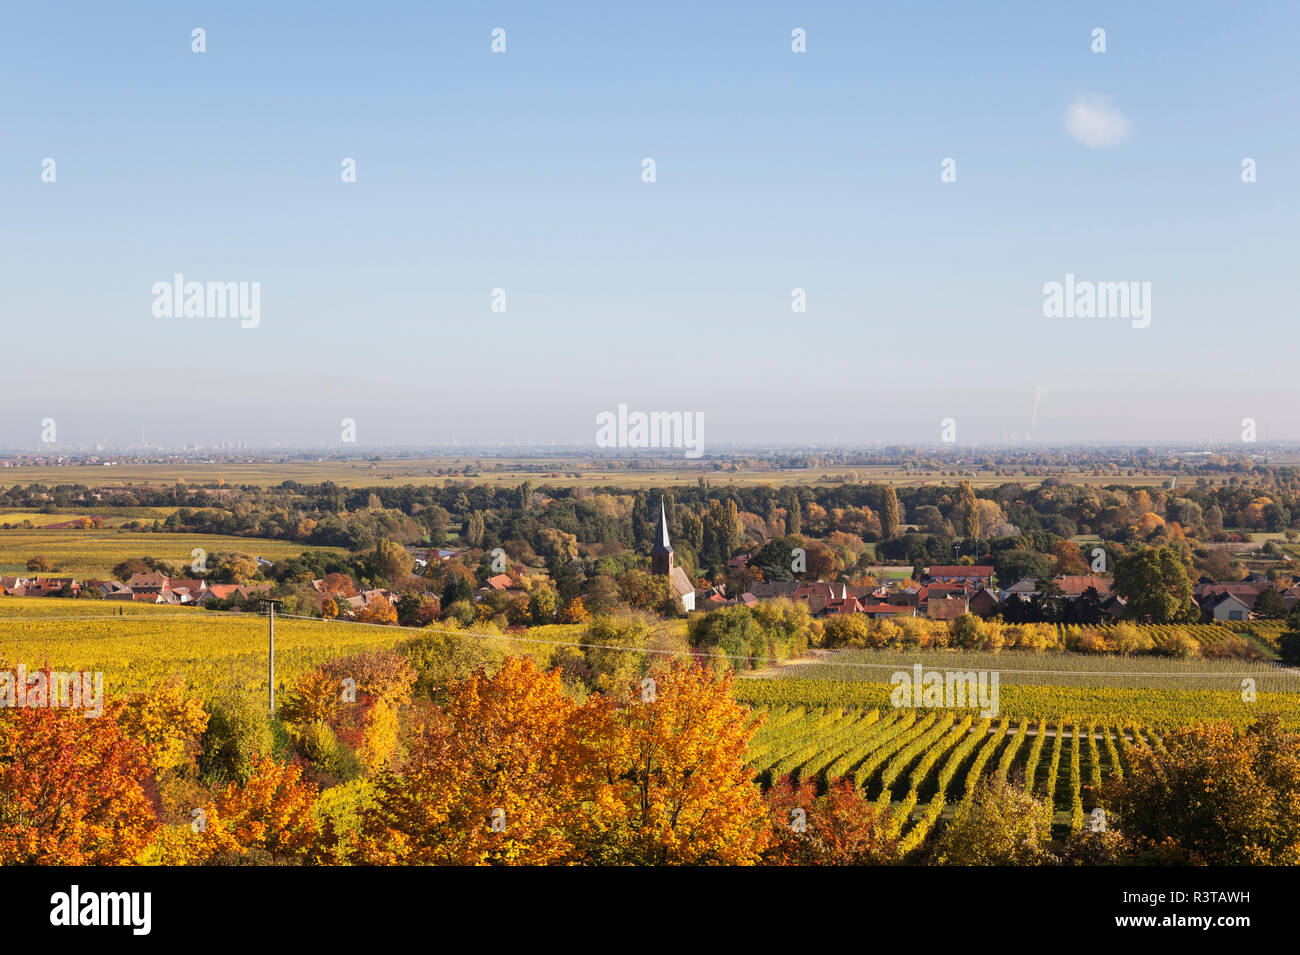 Germany,Rhineland-Palatinate, Pfalz, German Wine Route, wine village Forst and vineyards in autumn colours Stock Photo